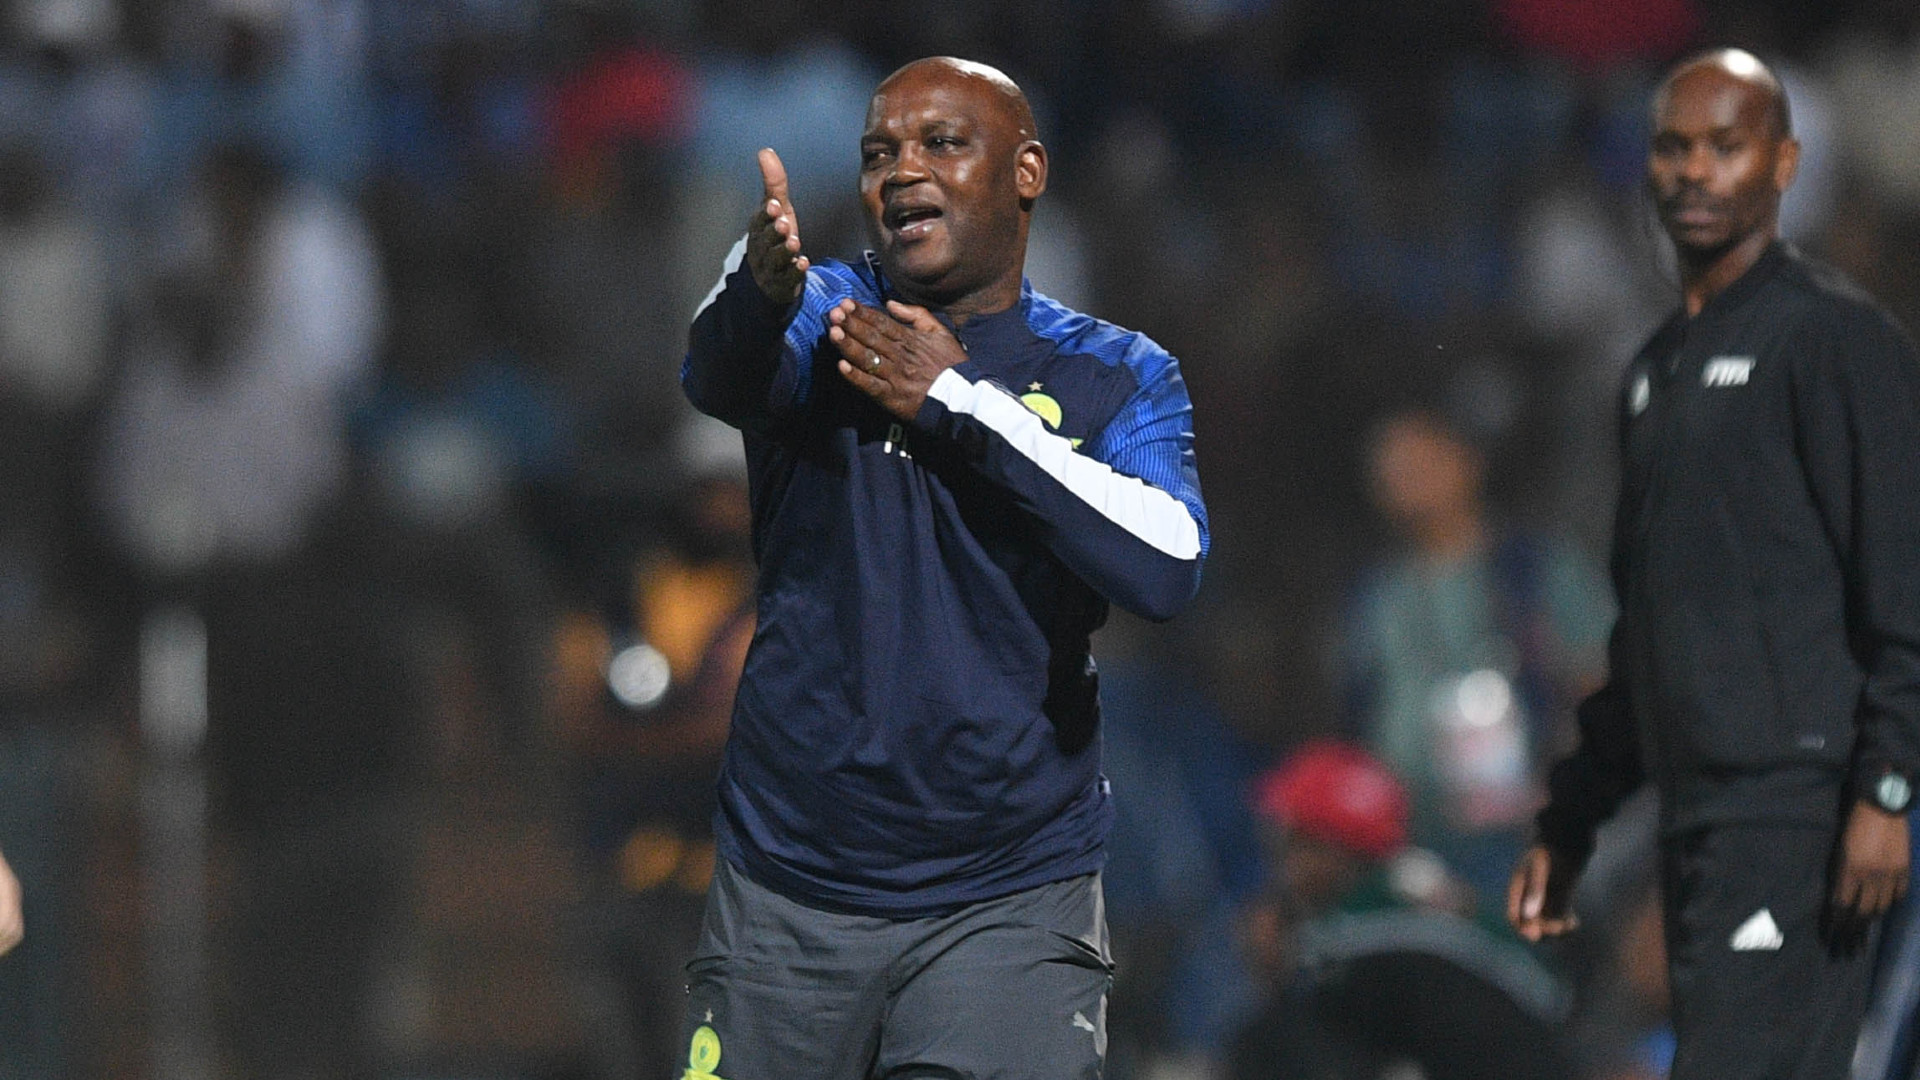 Letsoaka on why ex-Mamelodi Sundowns boss Mosimane will make his mark with Al Ahly